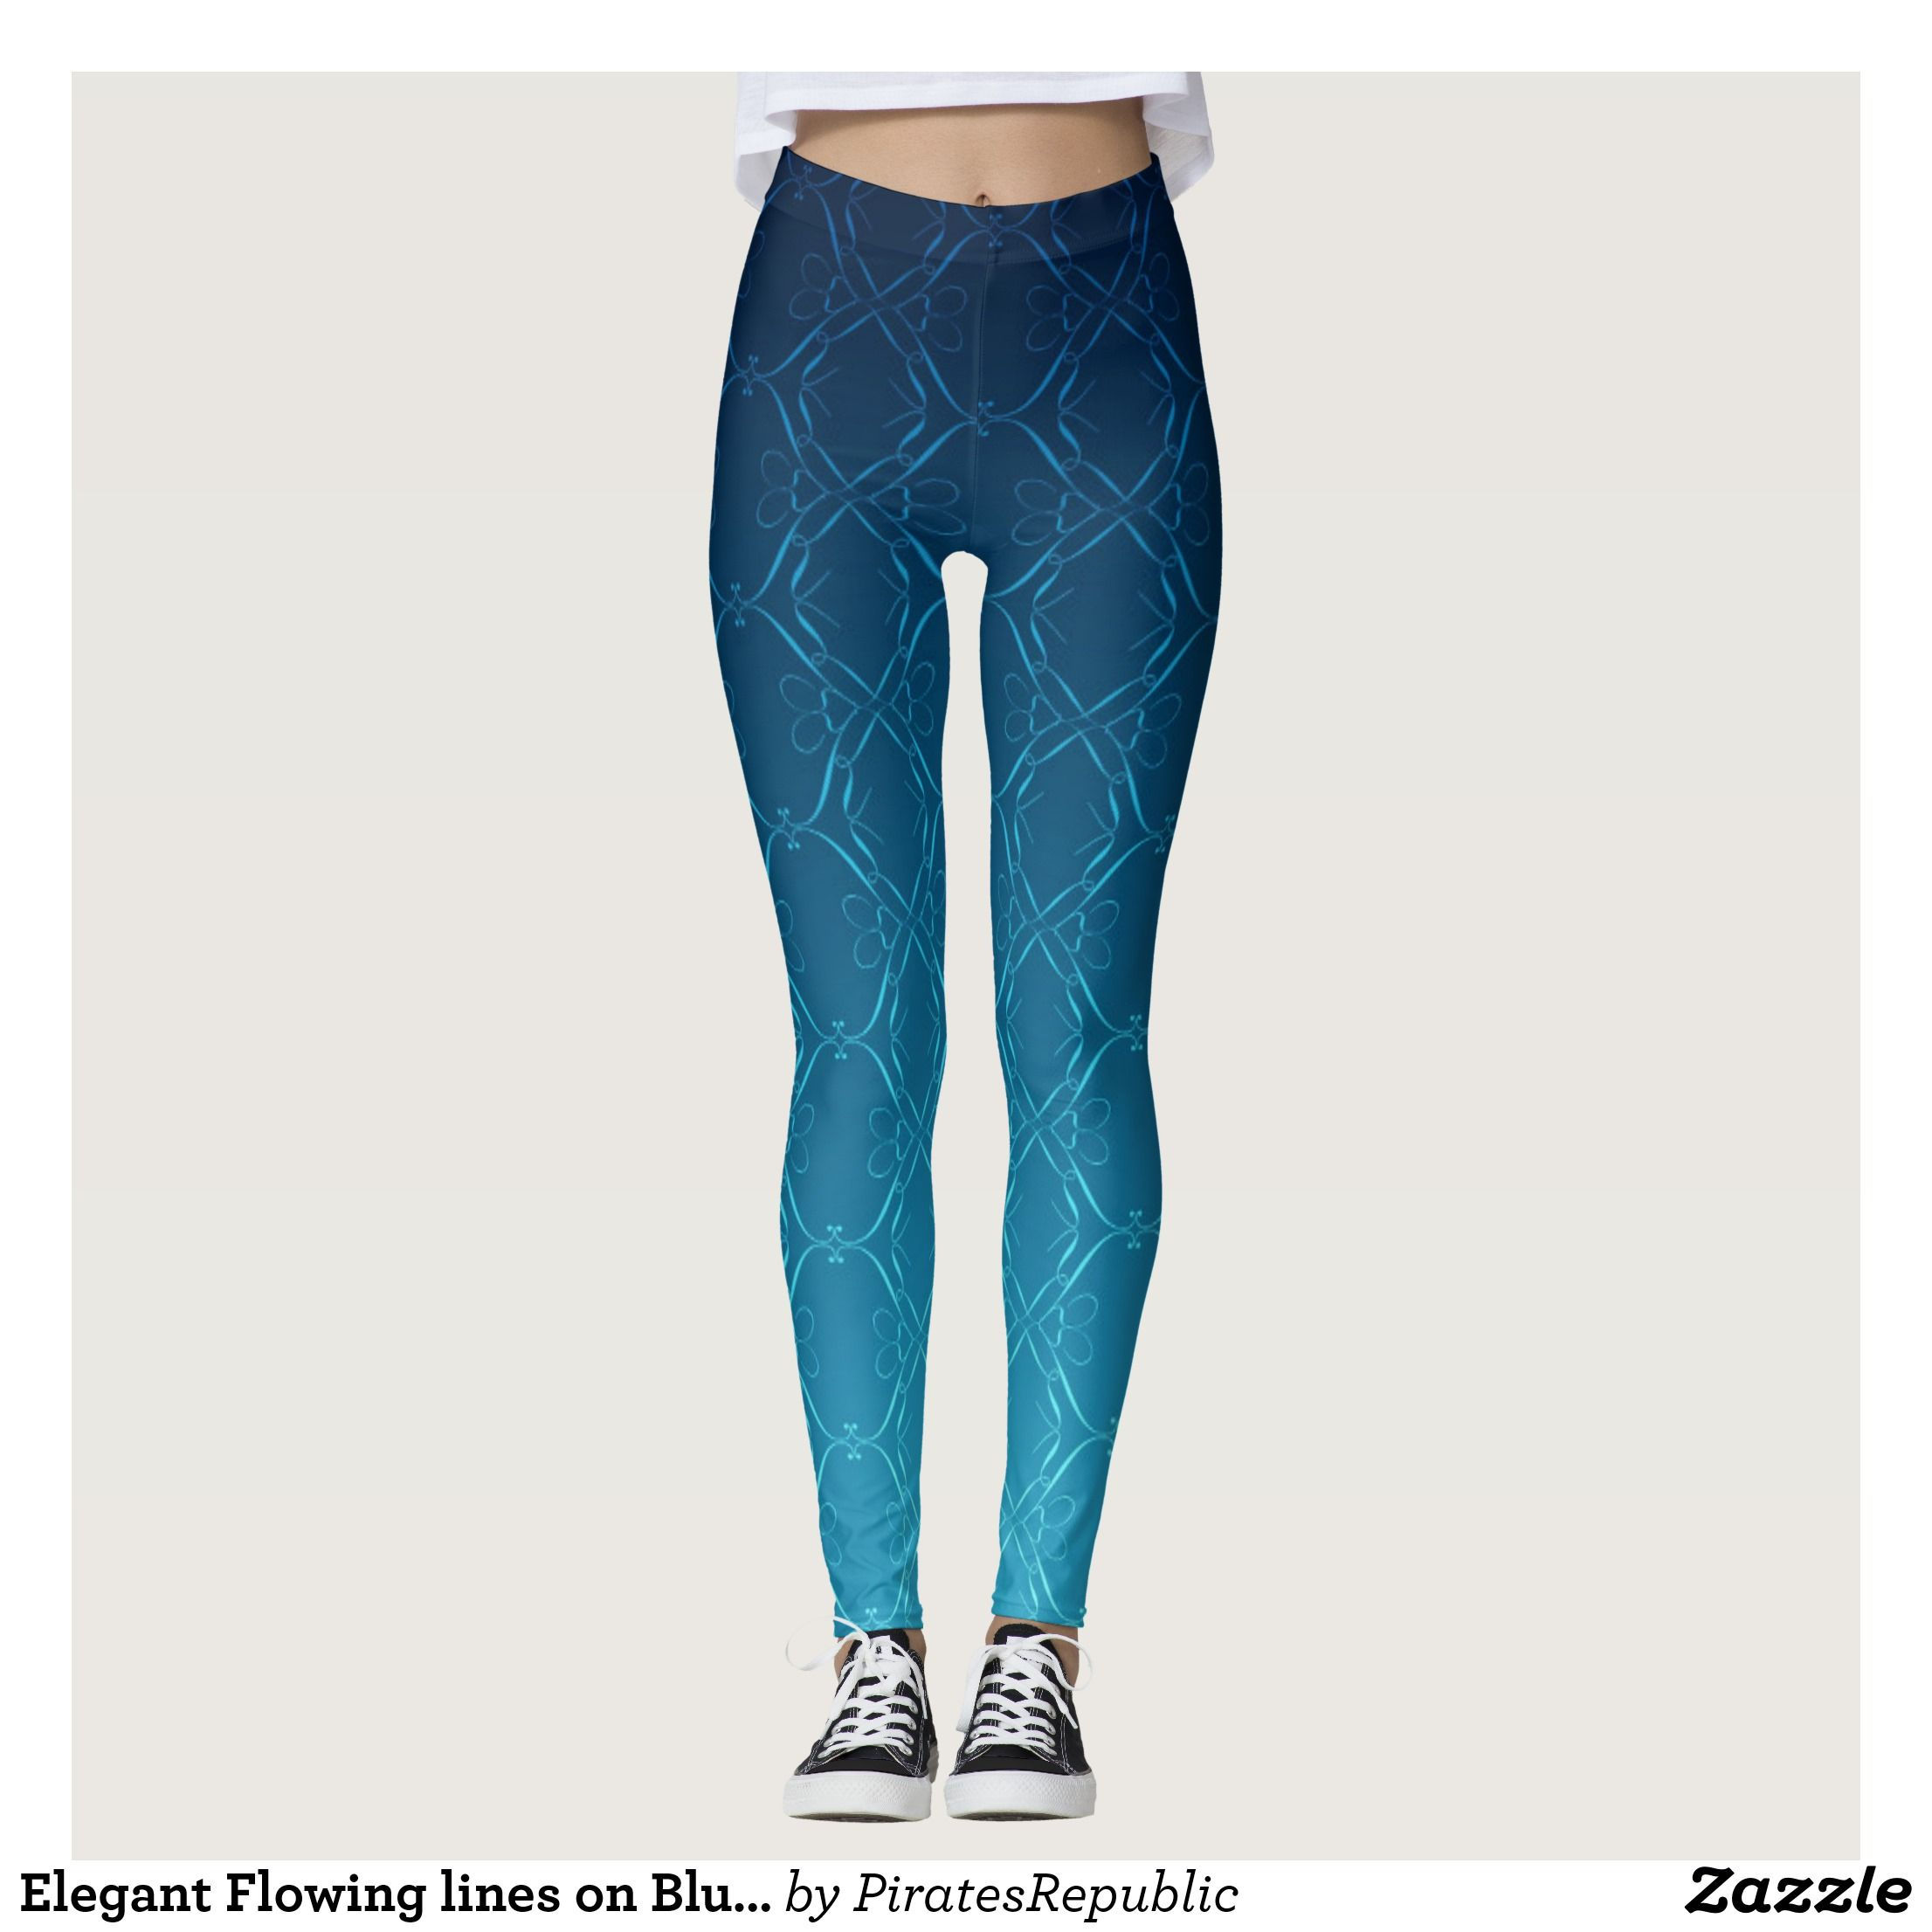 d234c09925f92e Elegant Flowing lines on Blue Ombre Leggings : Beautiful #Yoga Pants -  #Exercise Leggings and #Running Tights - Health and Training Inspiration -  Clothing ...